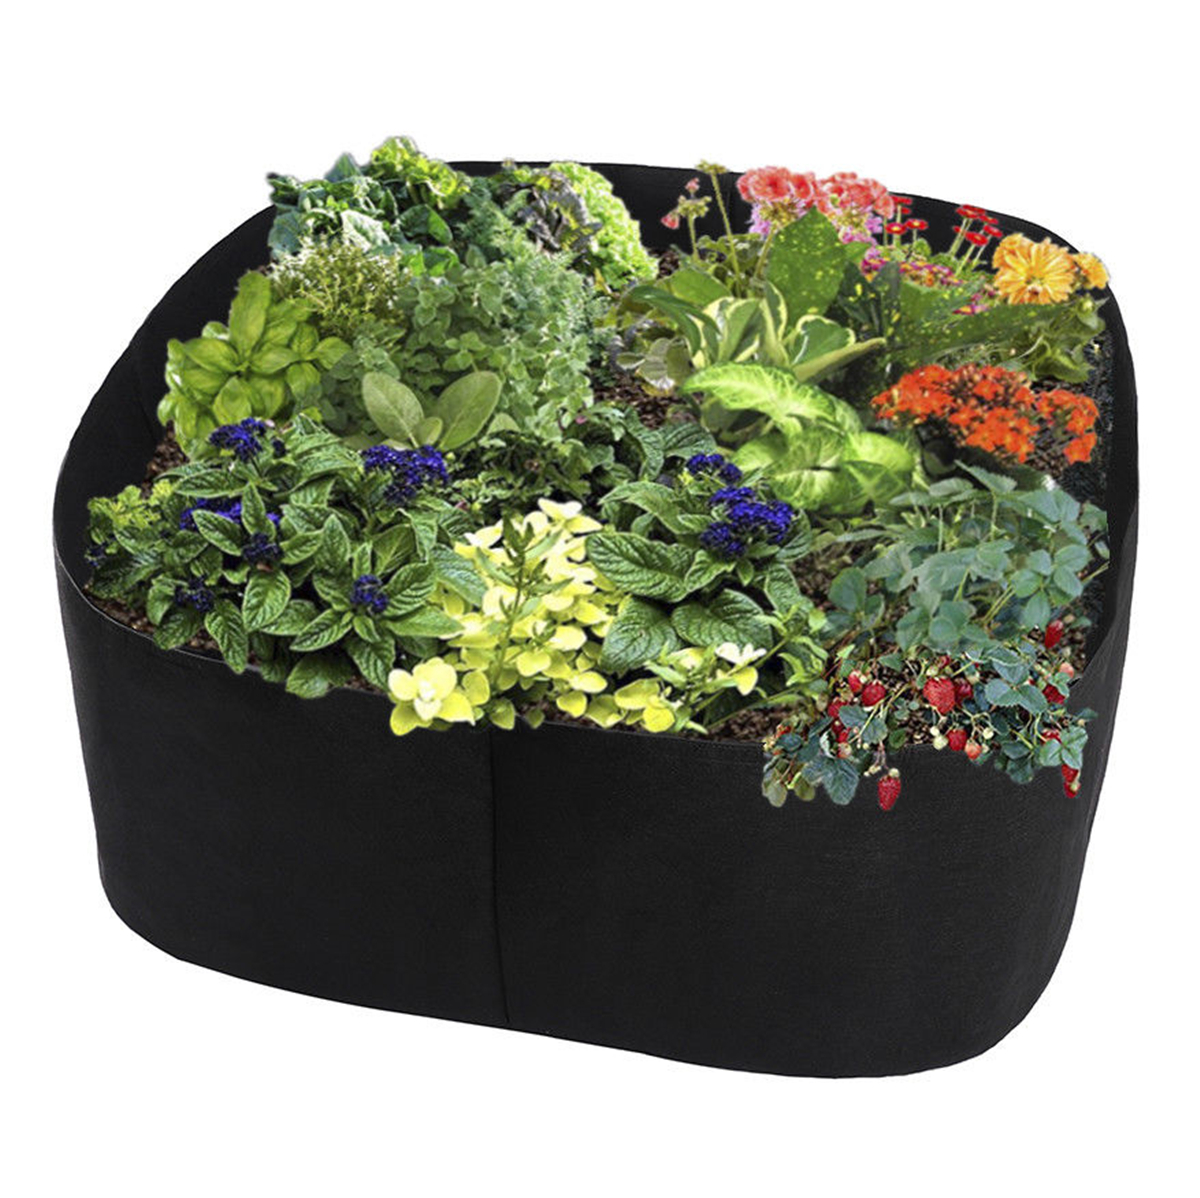 Flower Bed Maintenance Cost: Non Woven Fabric Raised Garden Bed Durable Grow Bags Herb